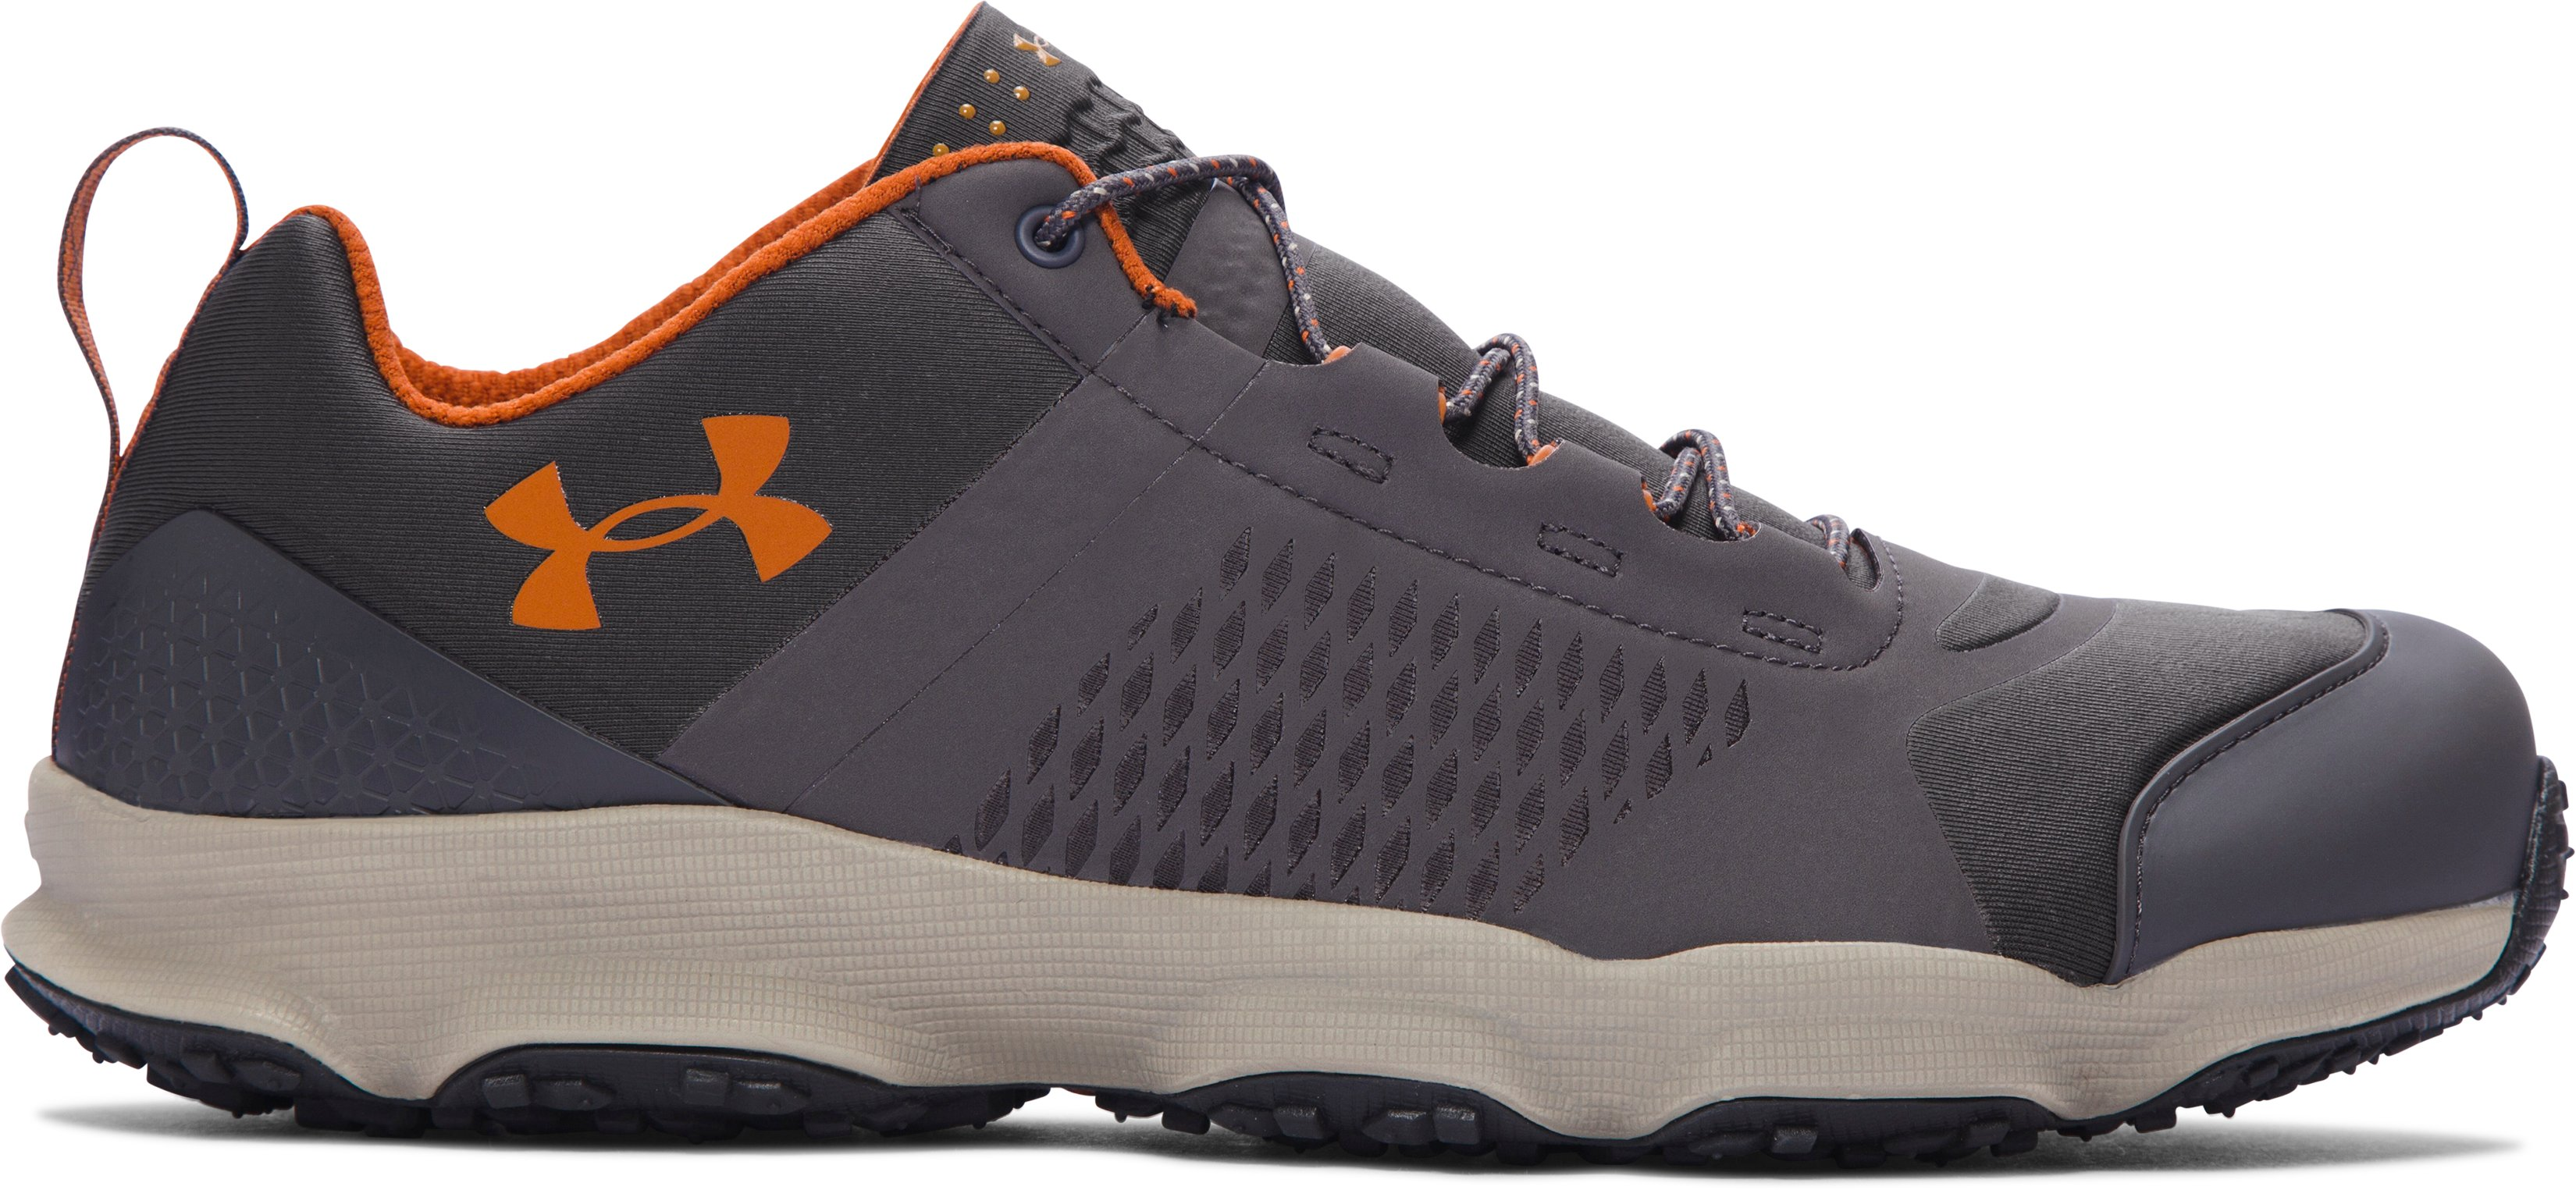 Men's UA SpeedFit Hike Low Boots, Charcoal